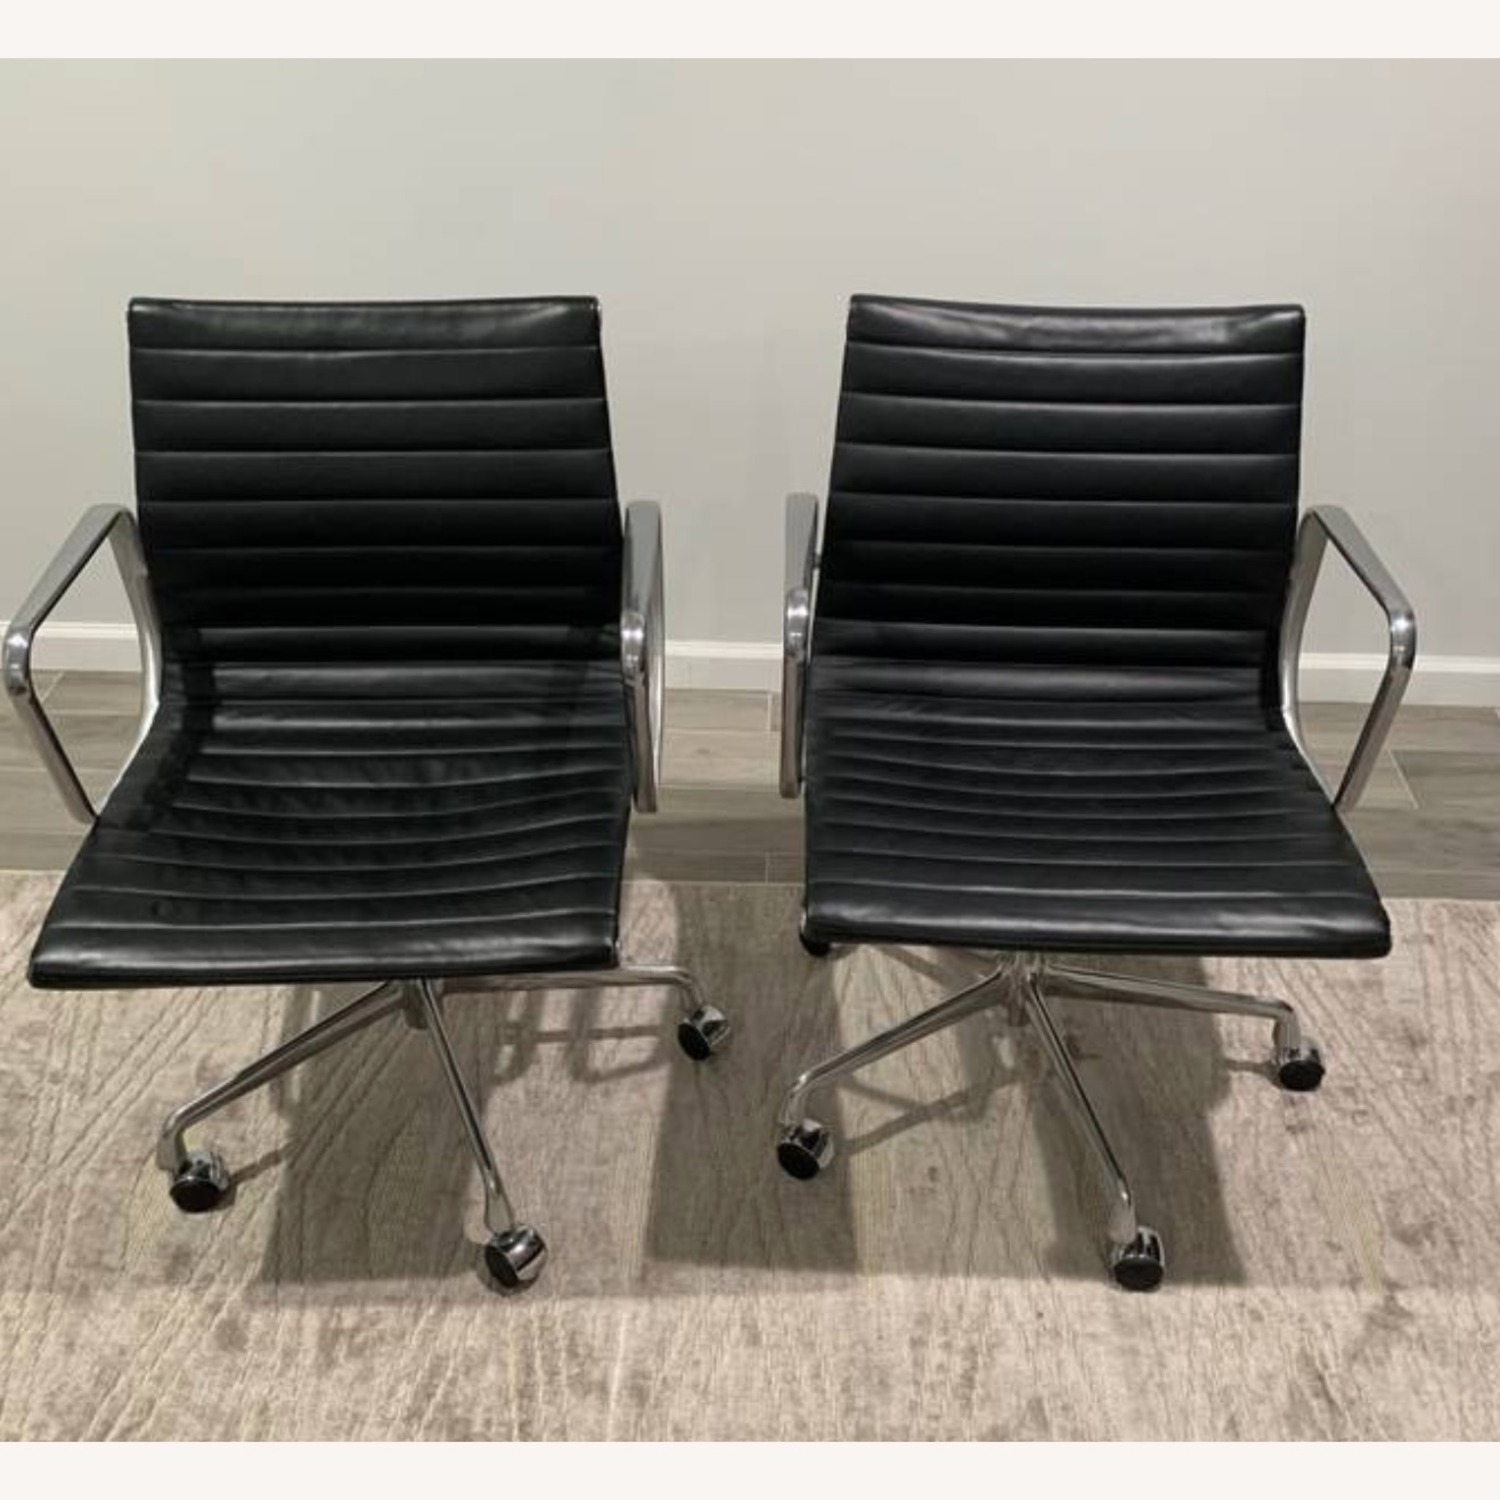 Herman Miller Eames Aluminum Group Chairs - image-1